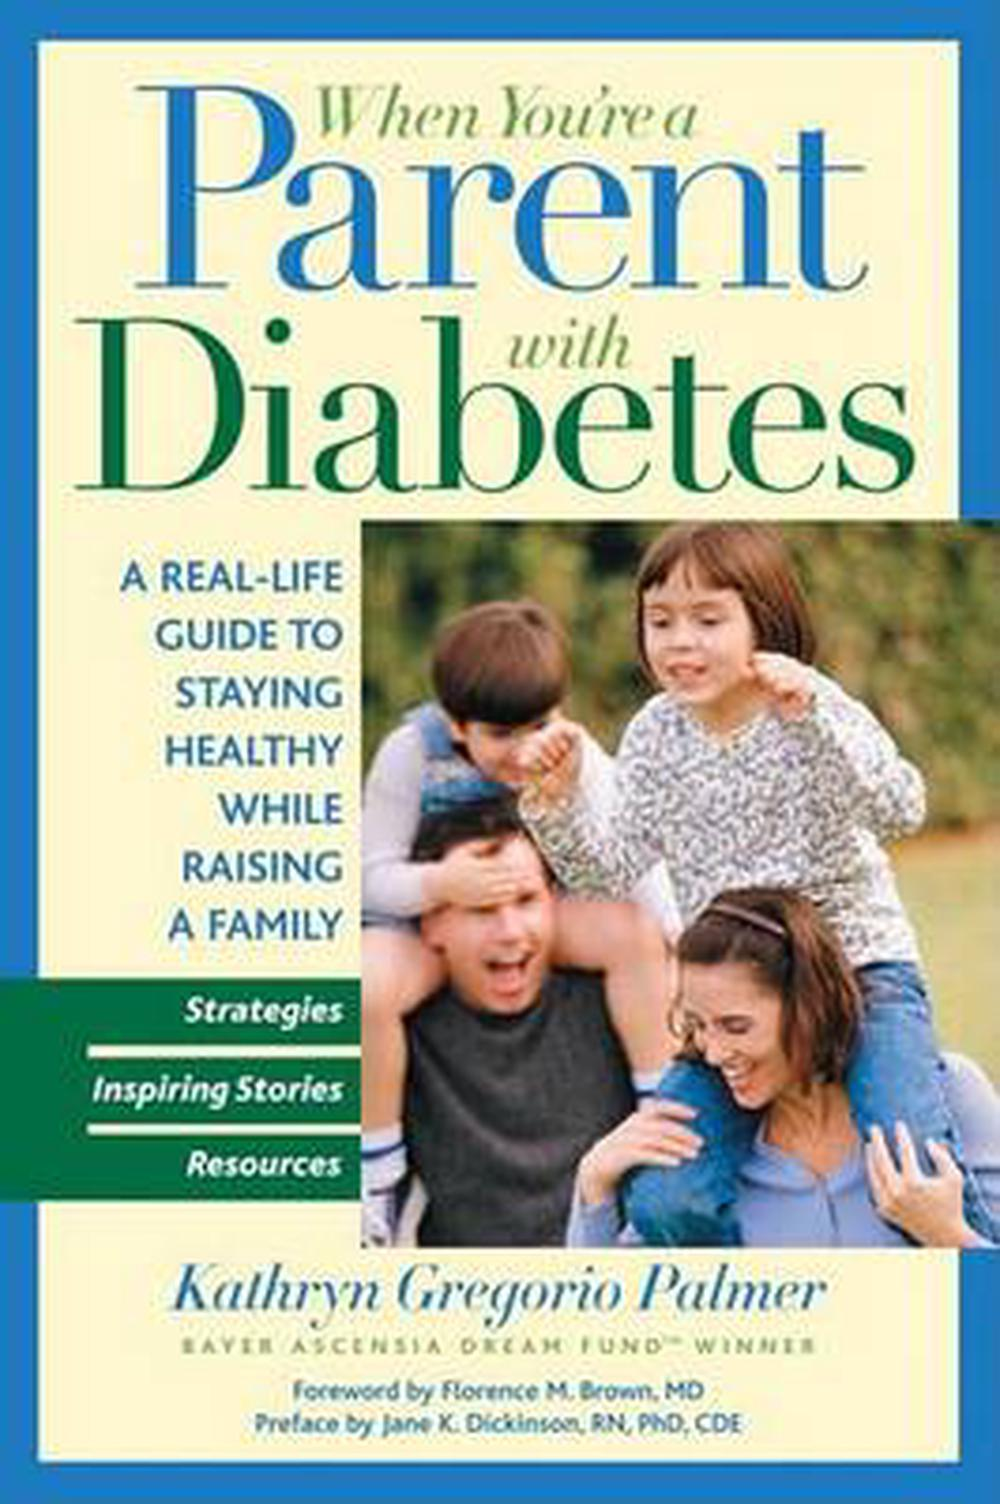 When You're a Parent with Diabetes: A Real-Life Guide to Staying Healthy While Raising a Family